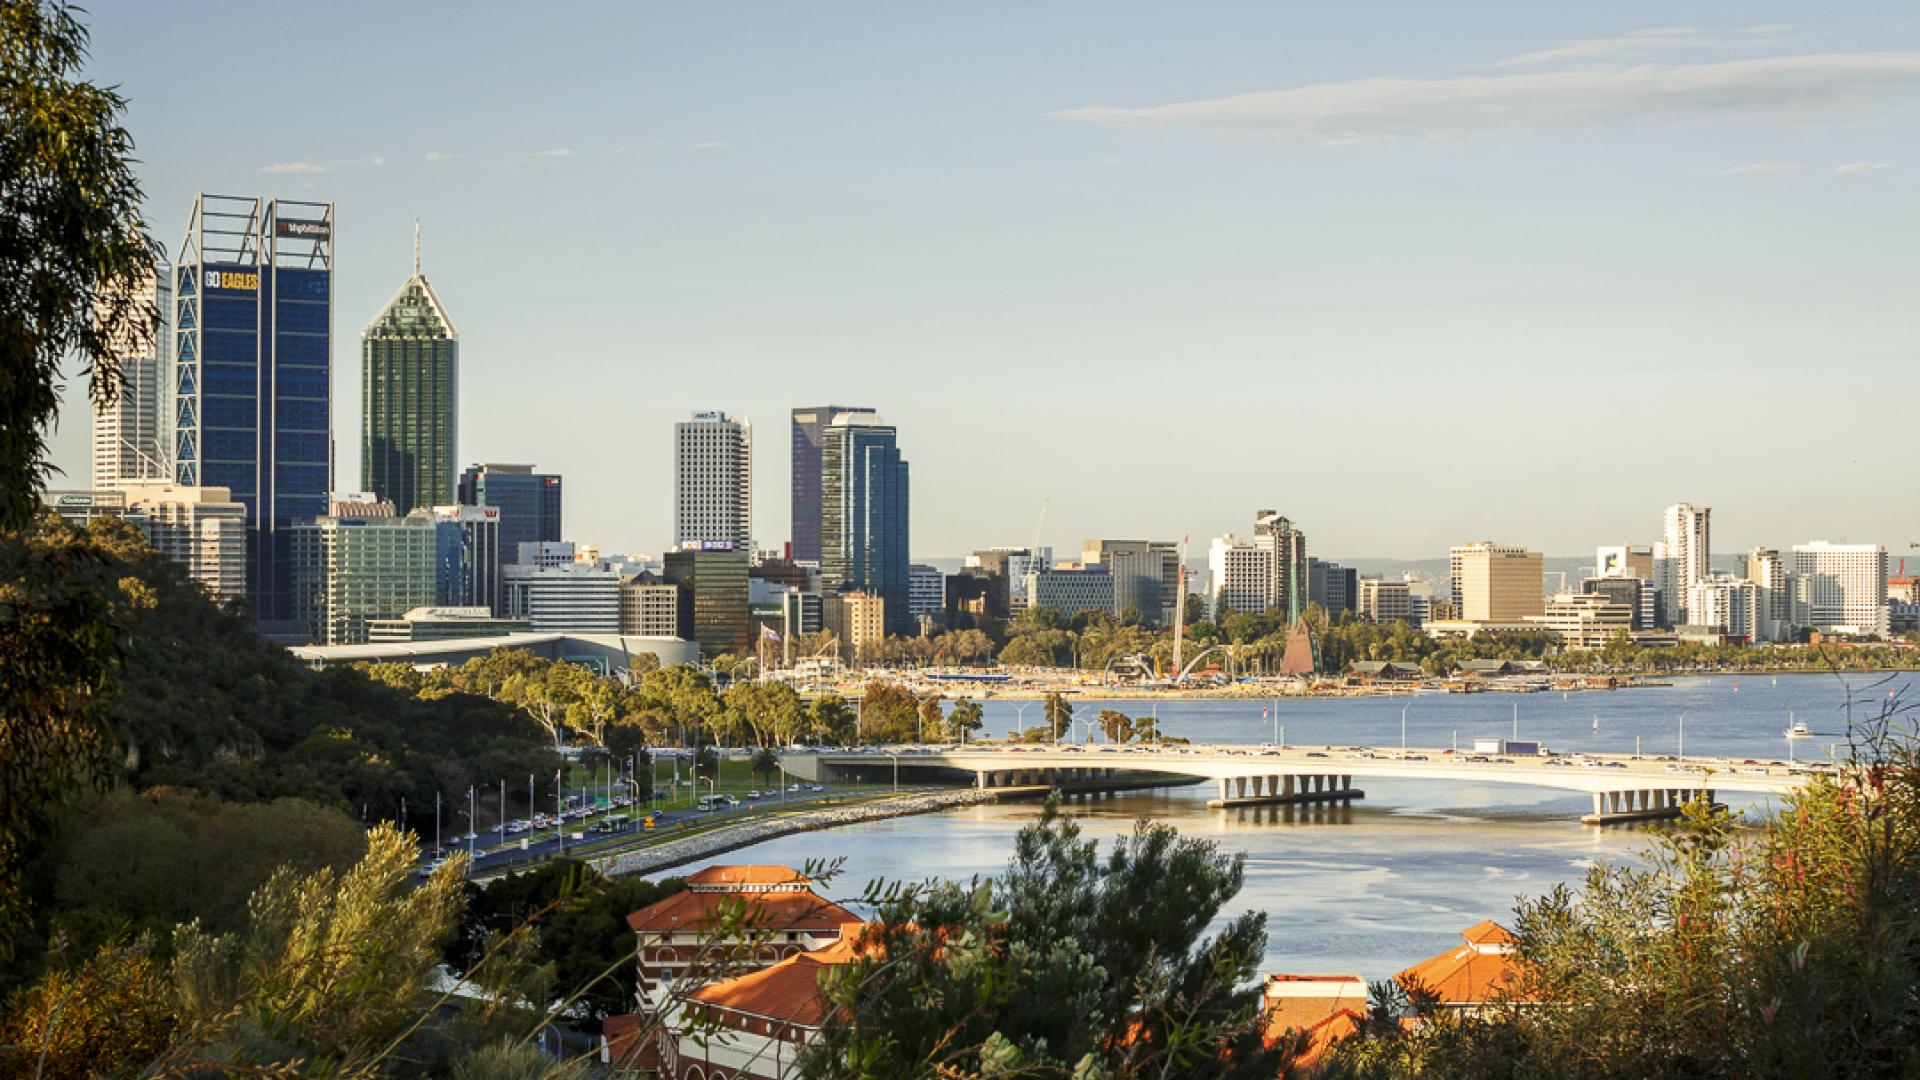 These Are the 15 Best Places to Visit in Australia in 2018!_12 best places to visit in australia These Are the 14 Best Places to Visit in Australia in 2018! These Are the 15 Best Places to Visit in Australia in 2018 12